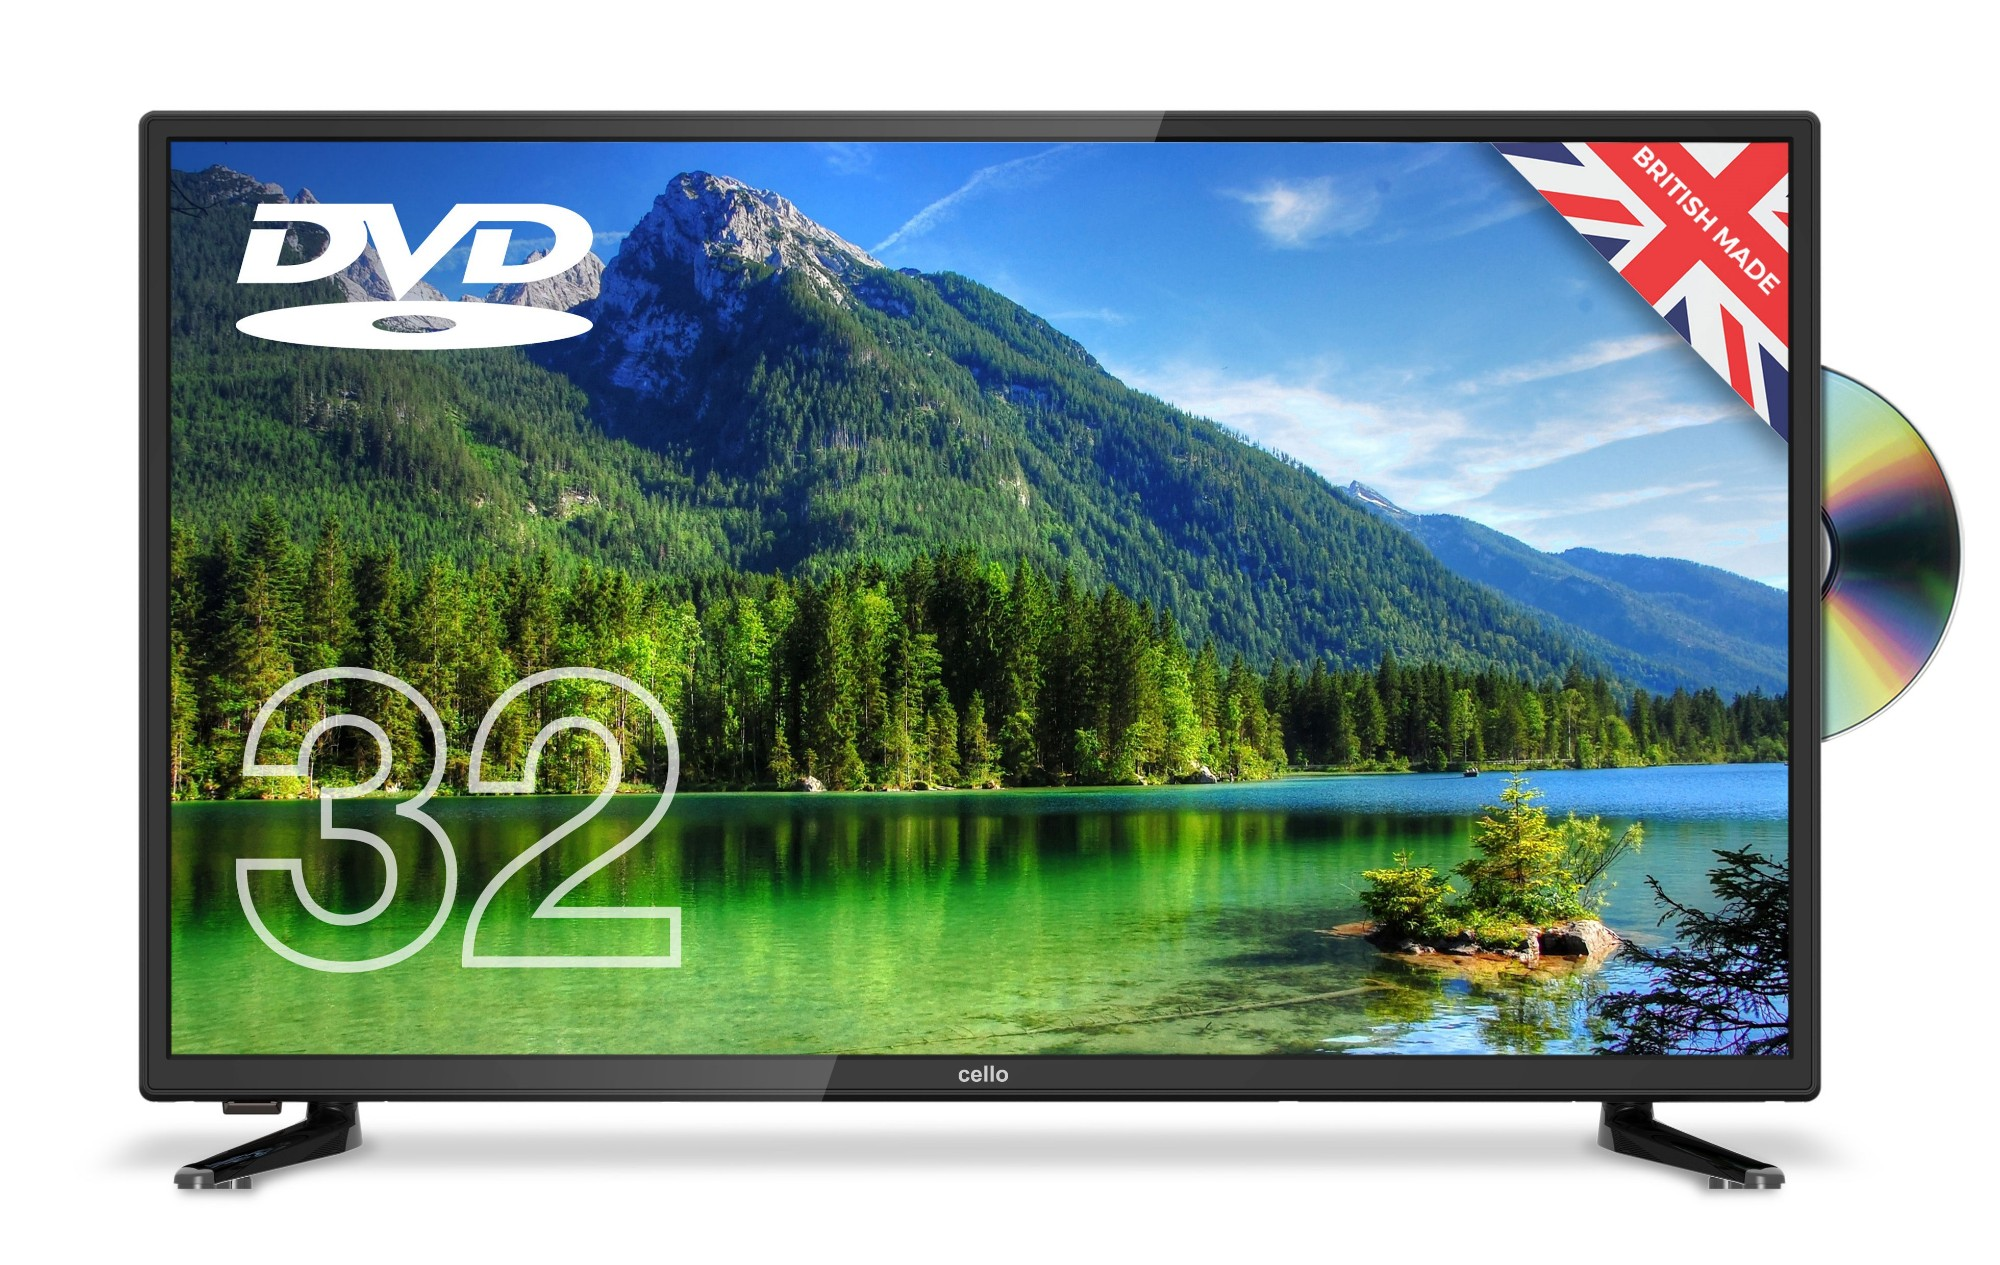 Led Tv 32in C32227ft2 Hd Ready 1366 X 768 16:9